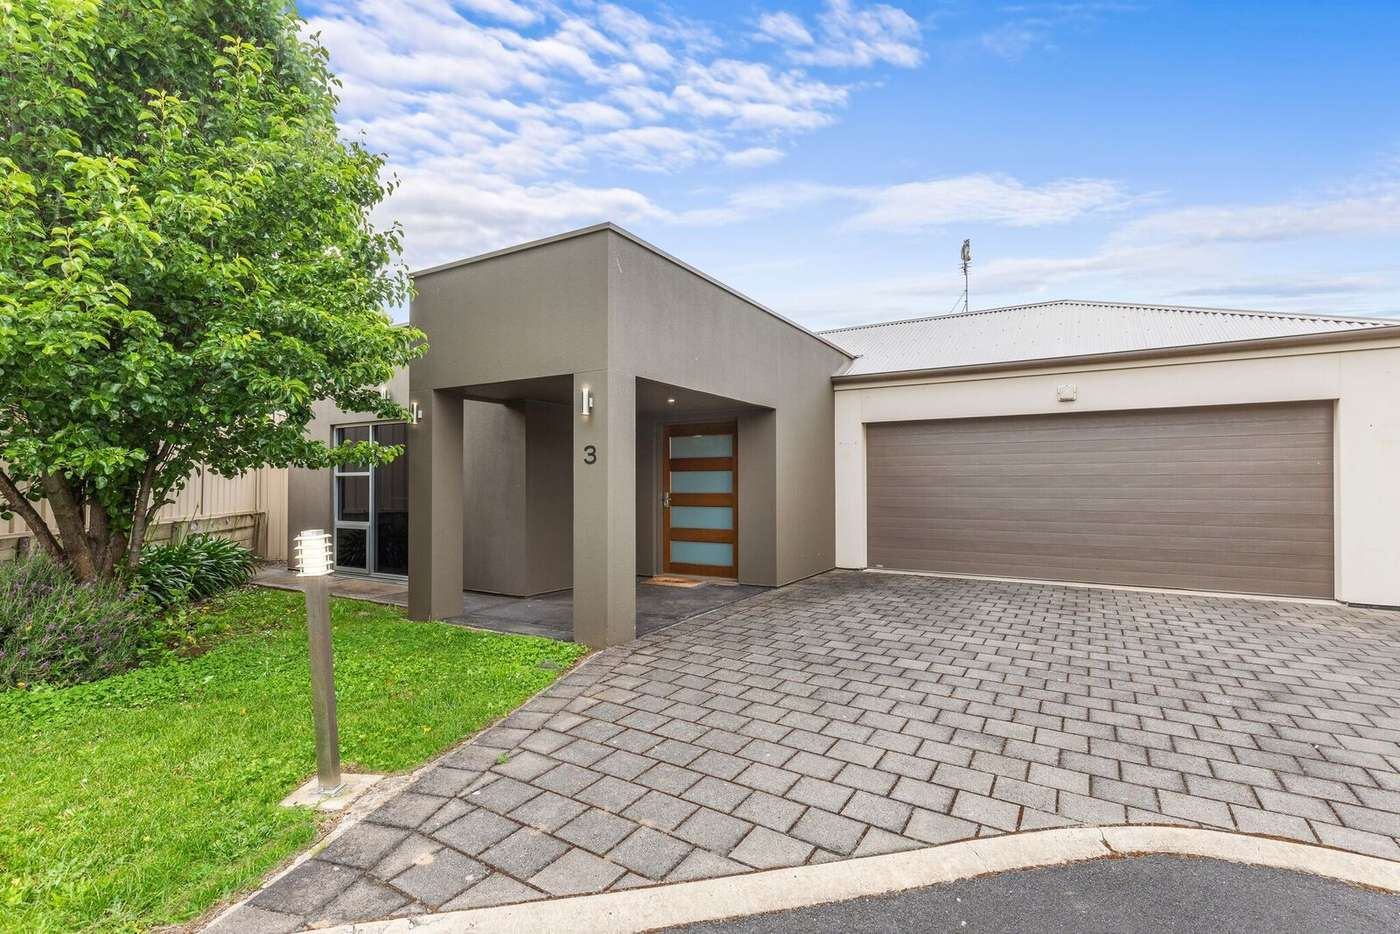 Main view of Homely house listing, 3/13 Allison Street, Mount Gambier, SA 5290